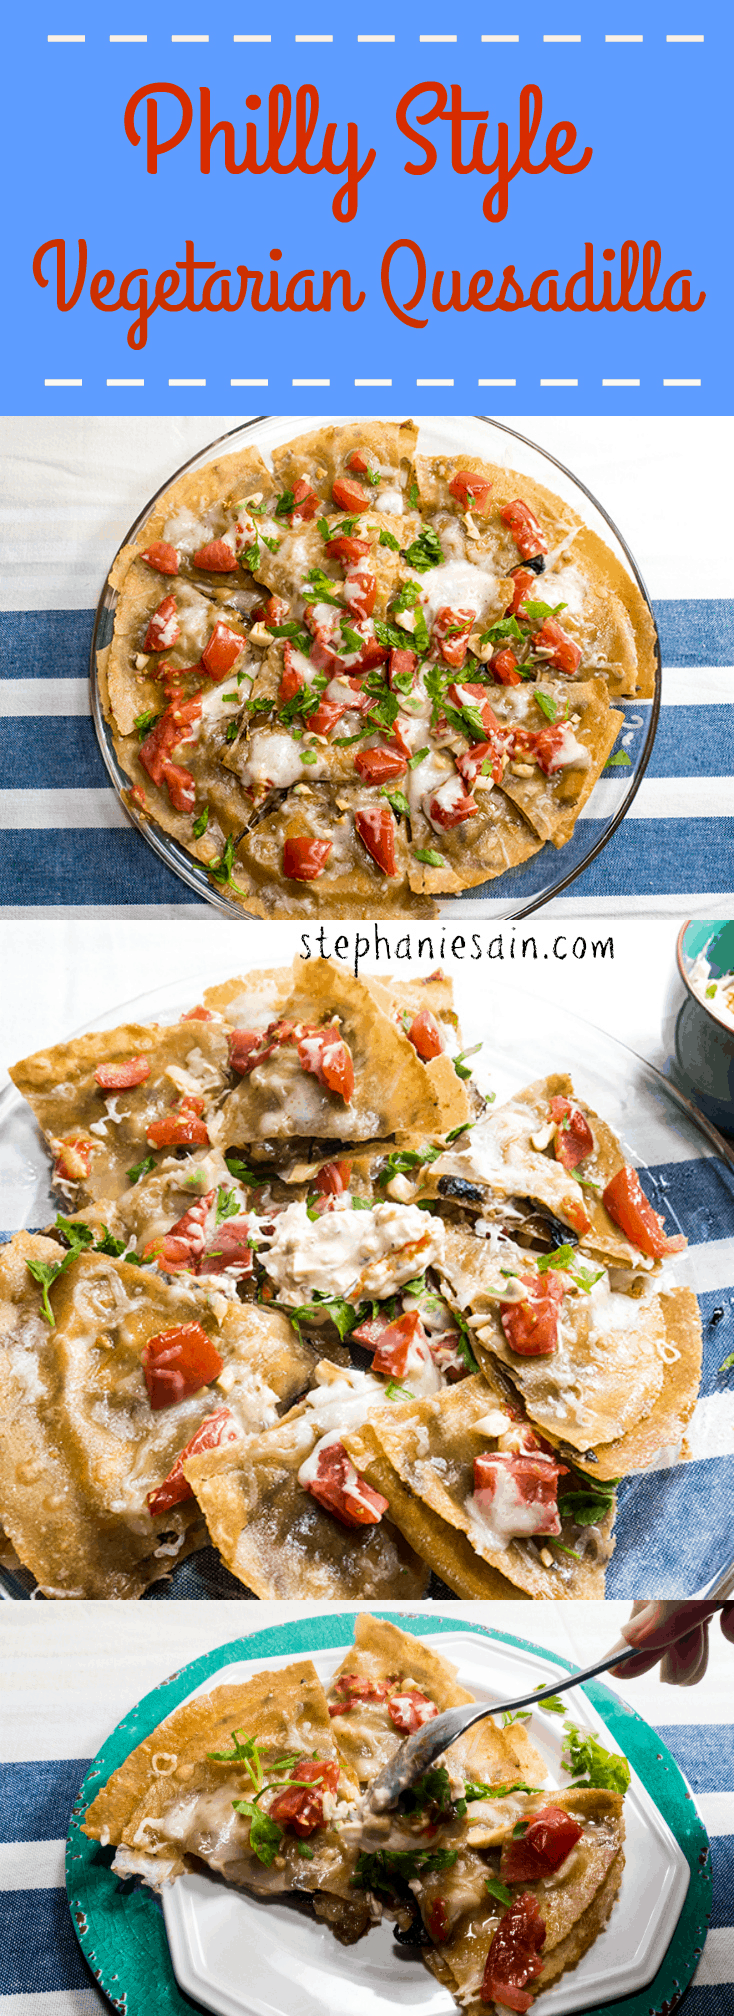 Philly Style Vegetarian Quesadilla is a easy, tasty to prepare appetizer that is gluten free. It can also serve as a tasty dinner for two.